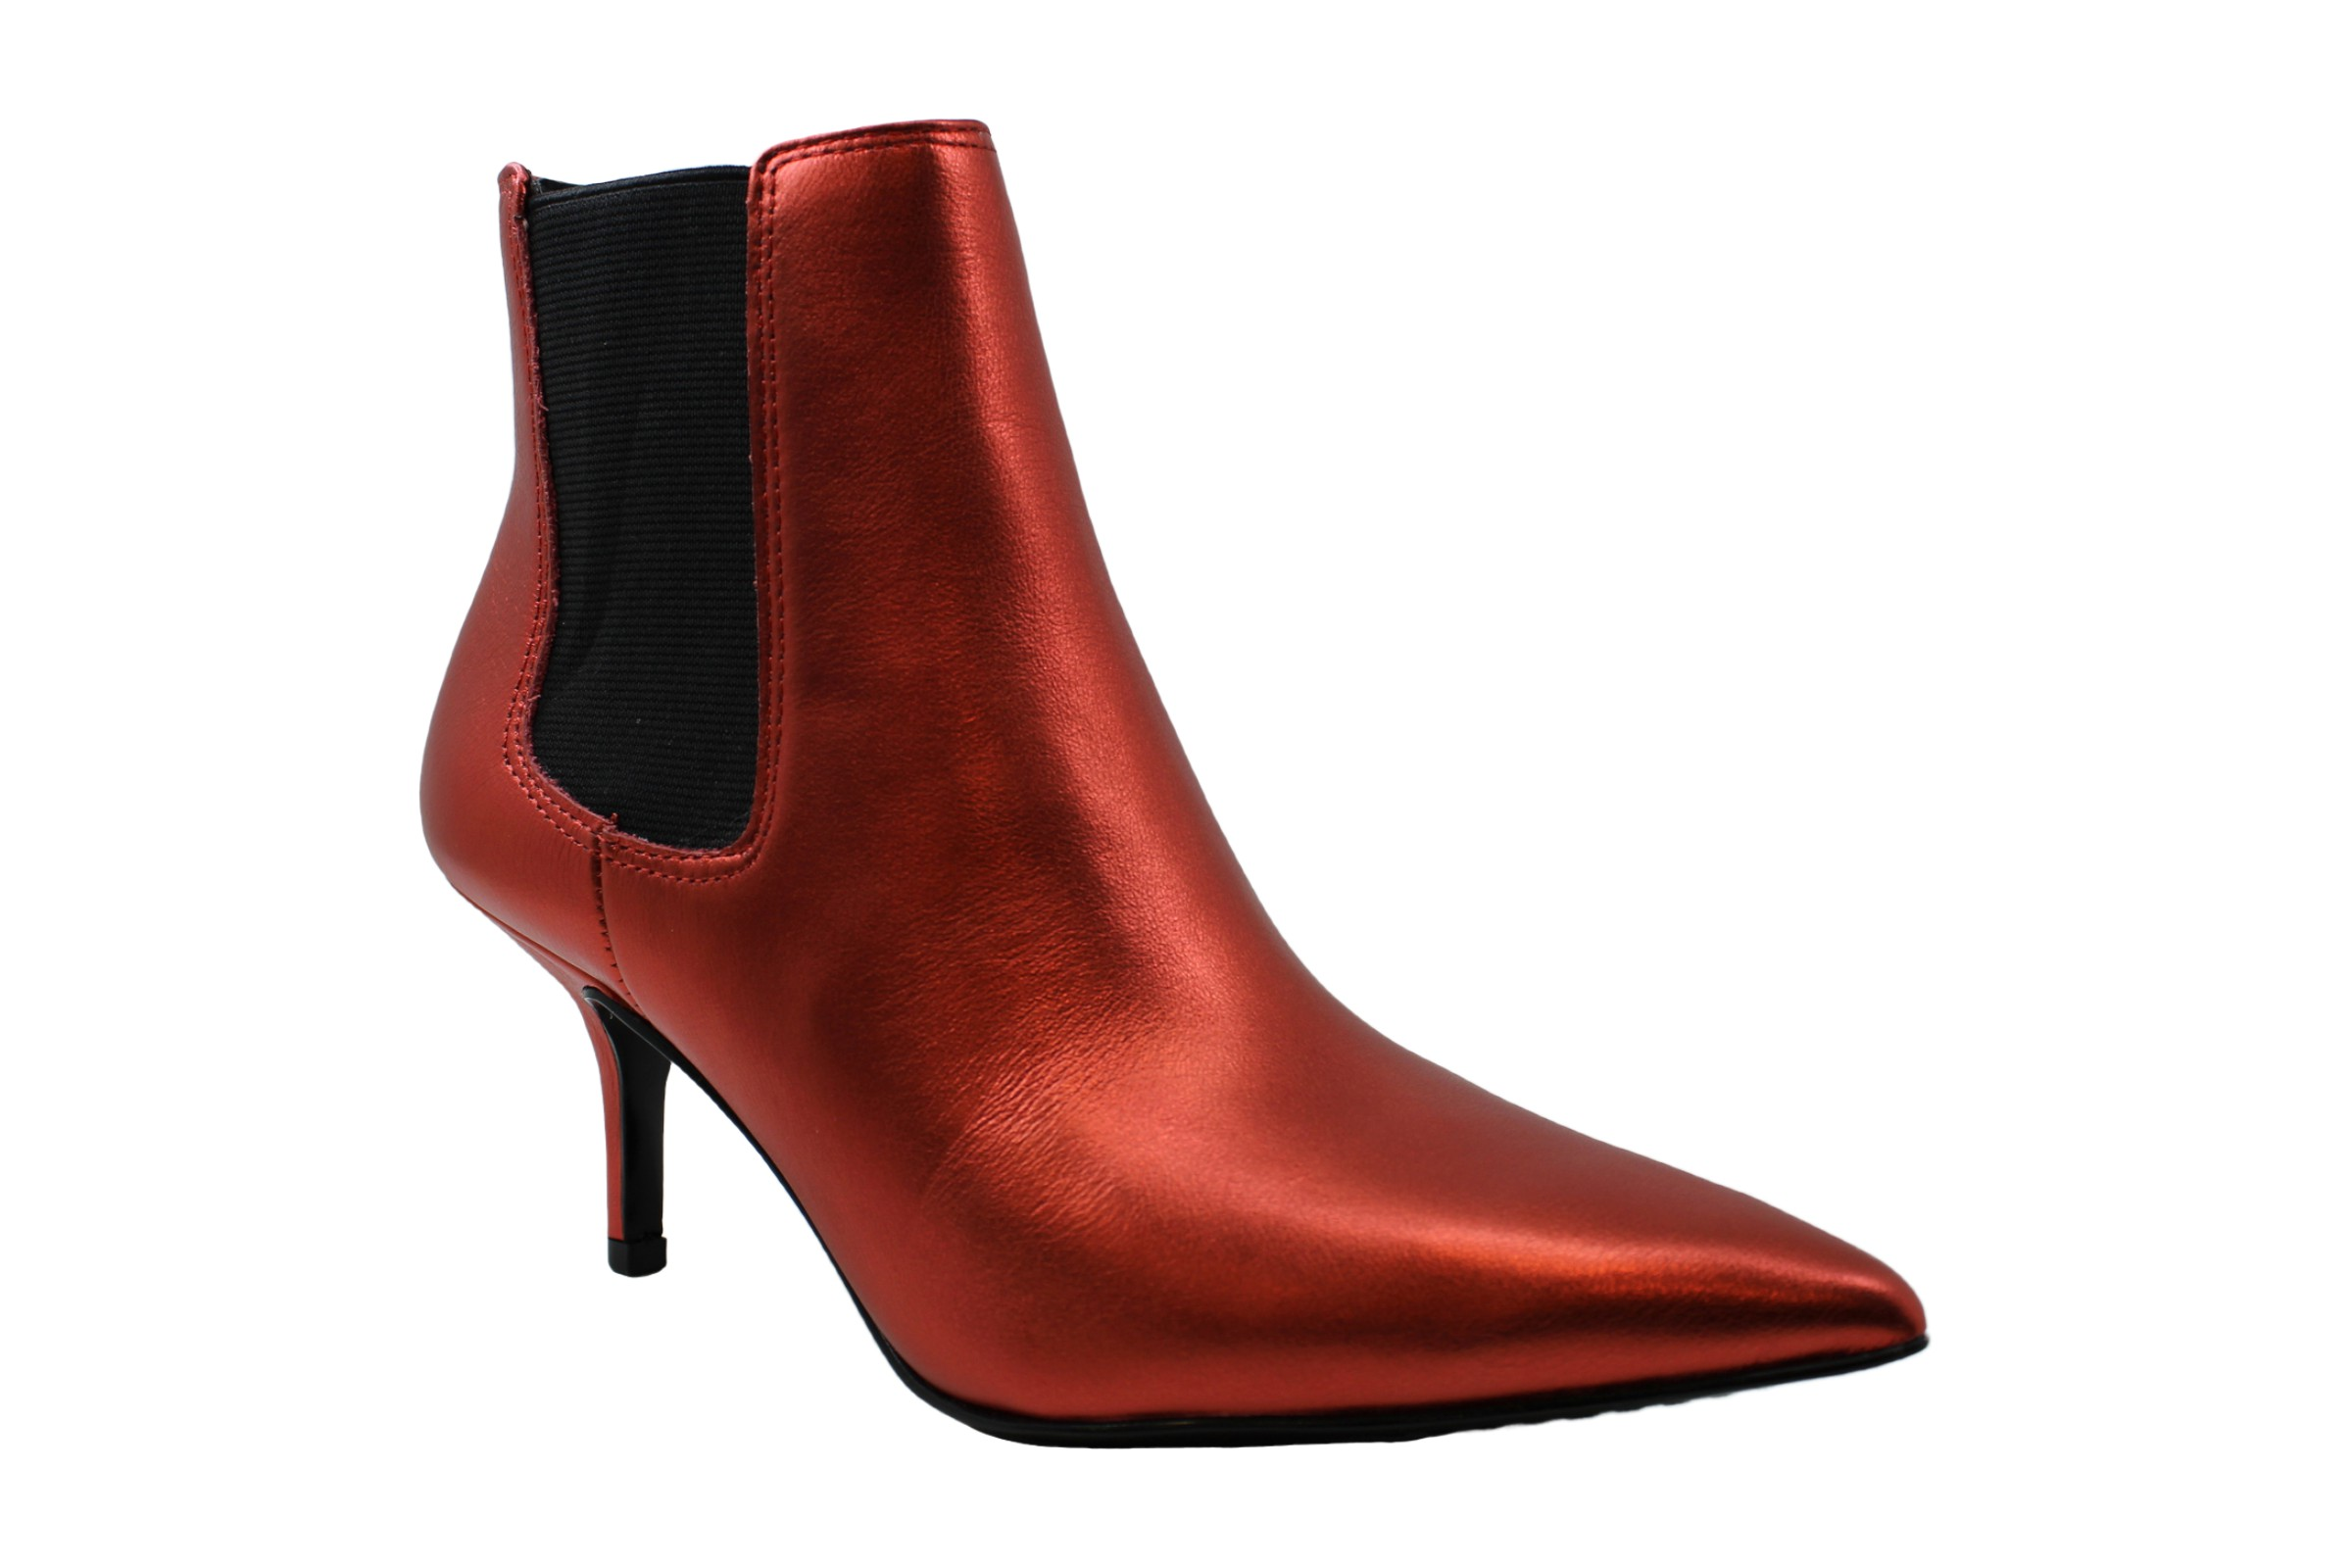 Vince-Camuto-Womens-Arlo-01-Leather-Pointed-Toe-Ankle-Chelsea-Boots thumbnail 2